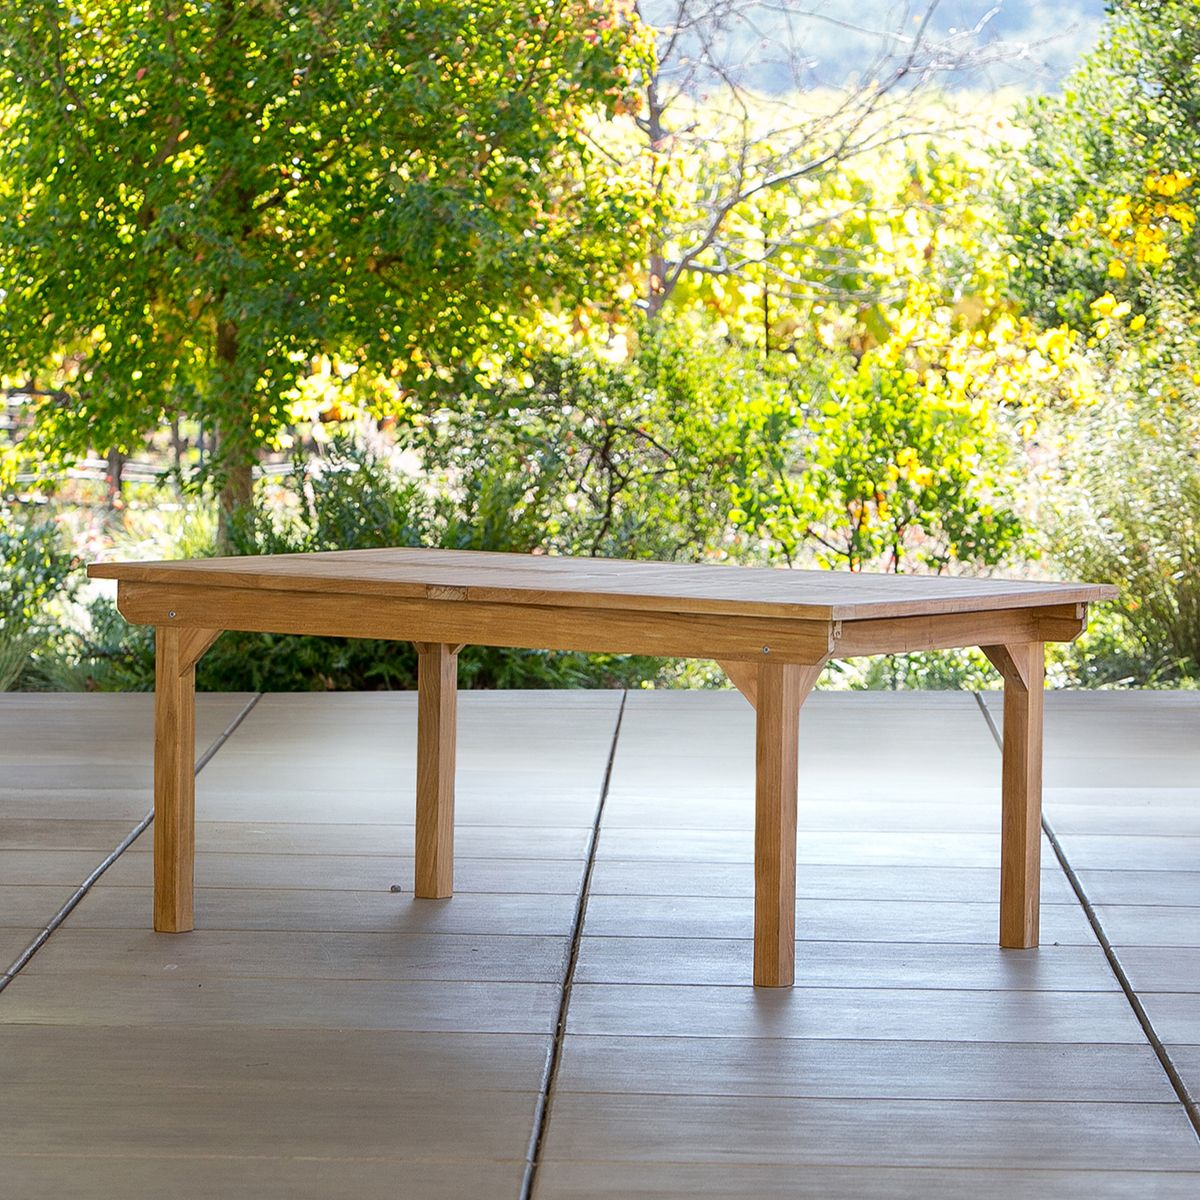 Madera Teak Extension 2 Table 72 108 Terra Outdoor Living Teak Table Outdoor Outdoor Wood Furniture Teak Outdoor Furniture